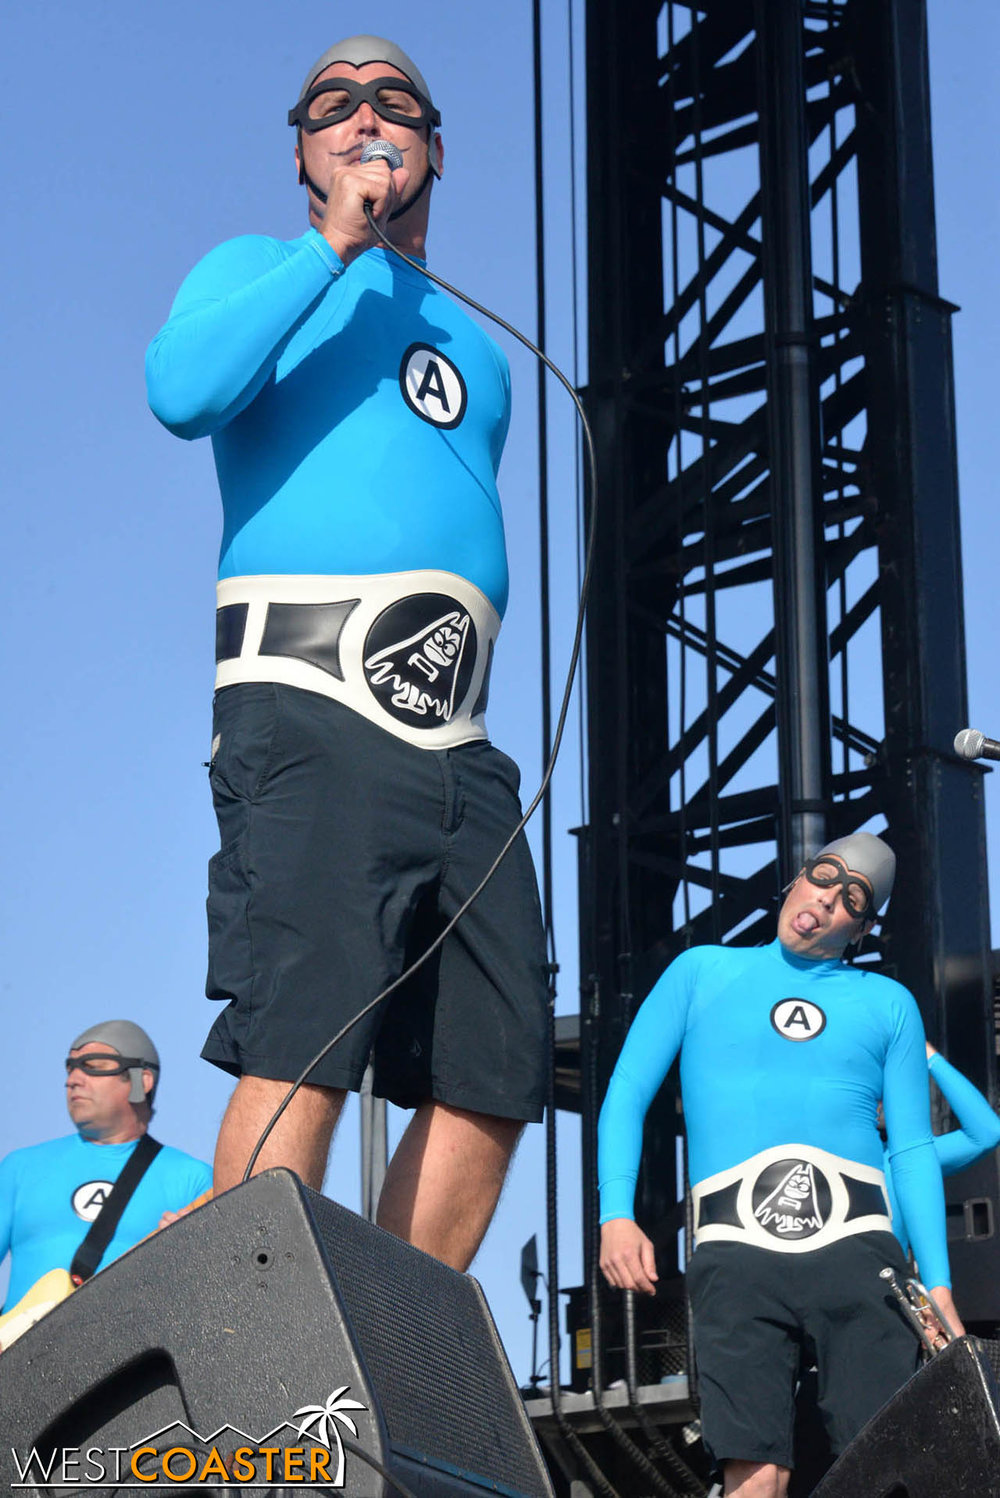 B2tB-18_0504-D-Music-3-Aquabats-0025.jpg